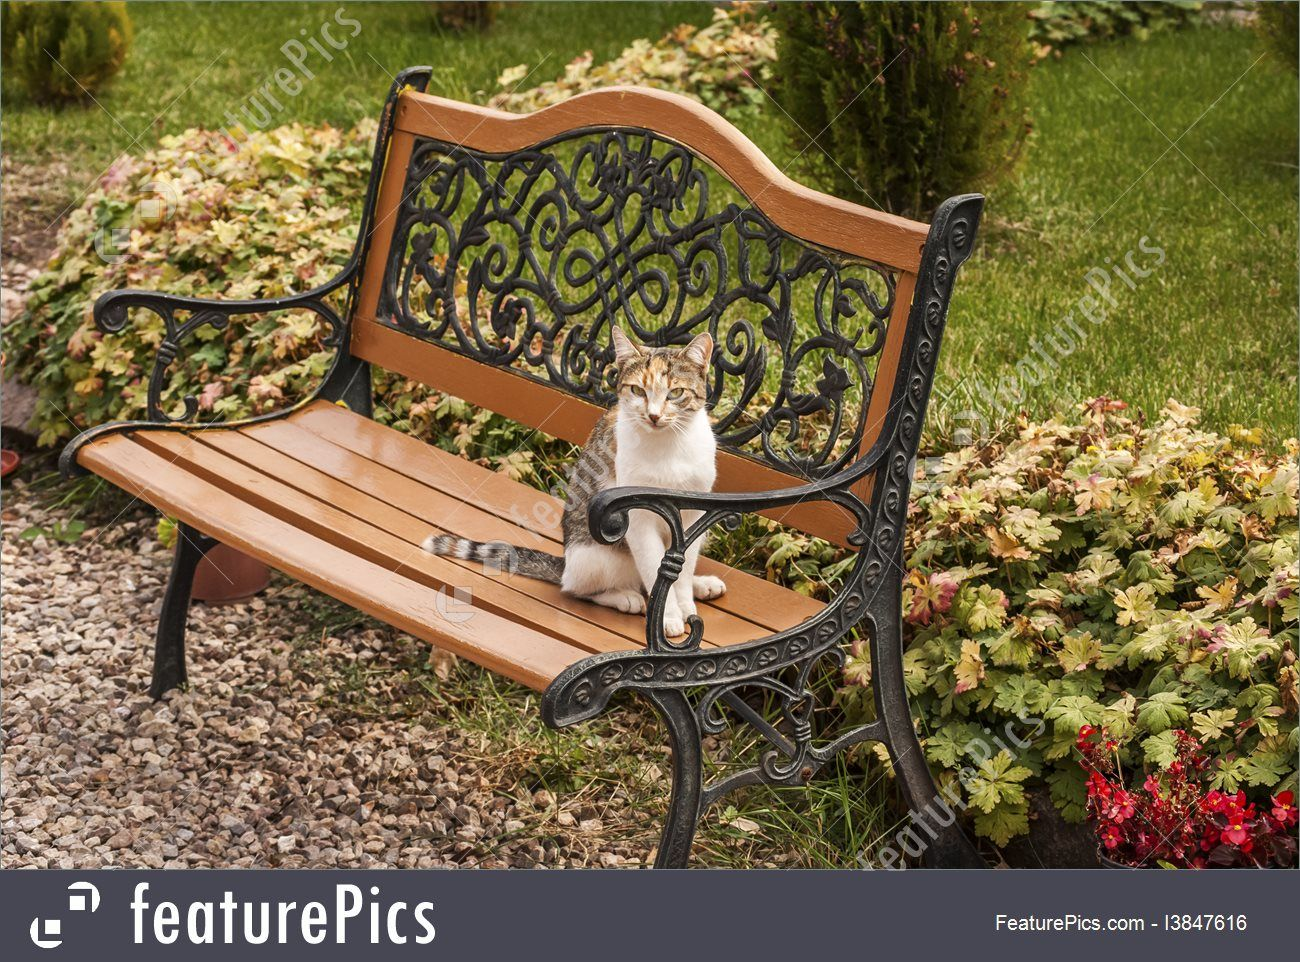 Terrific Garden Bench Cat Pets Cat On Garden Bench Stock Photo Inzonedesignstudio Interior Chair Design Inzonedesignstudiocom